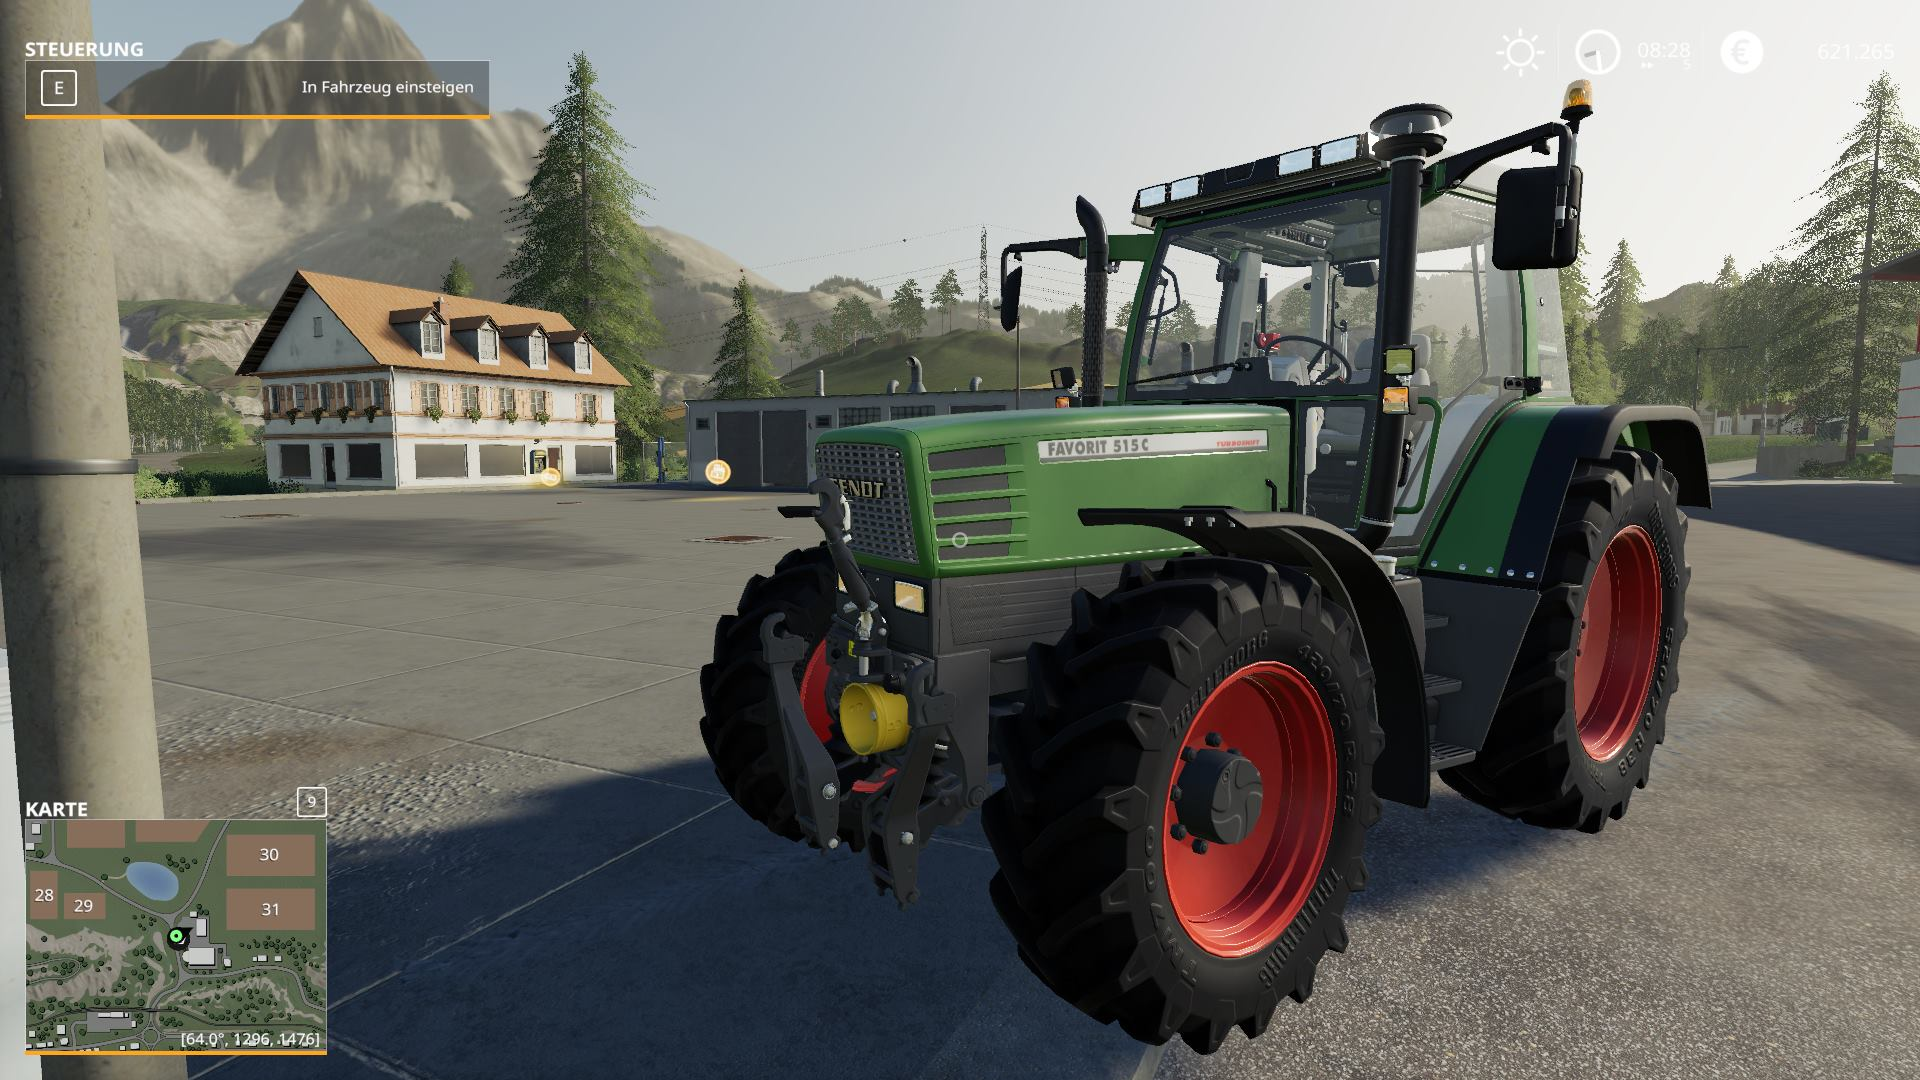 How Farming Simulator became a global community and unlikely esports